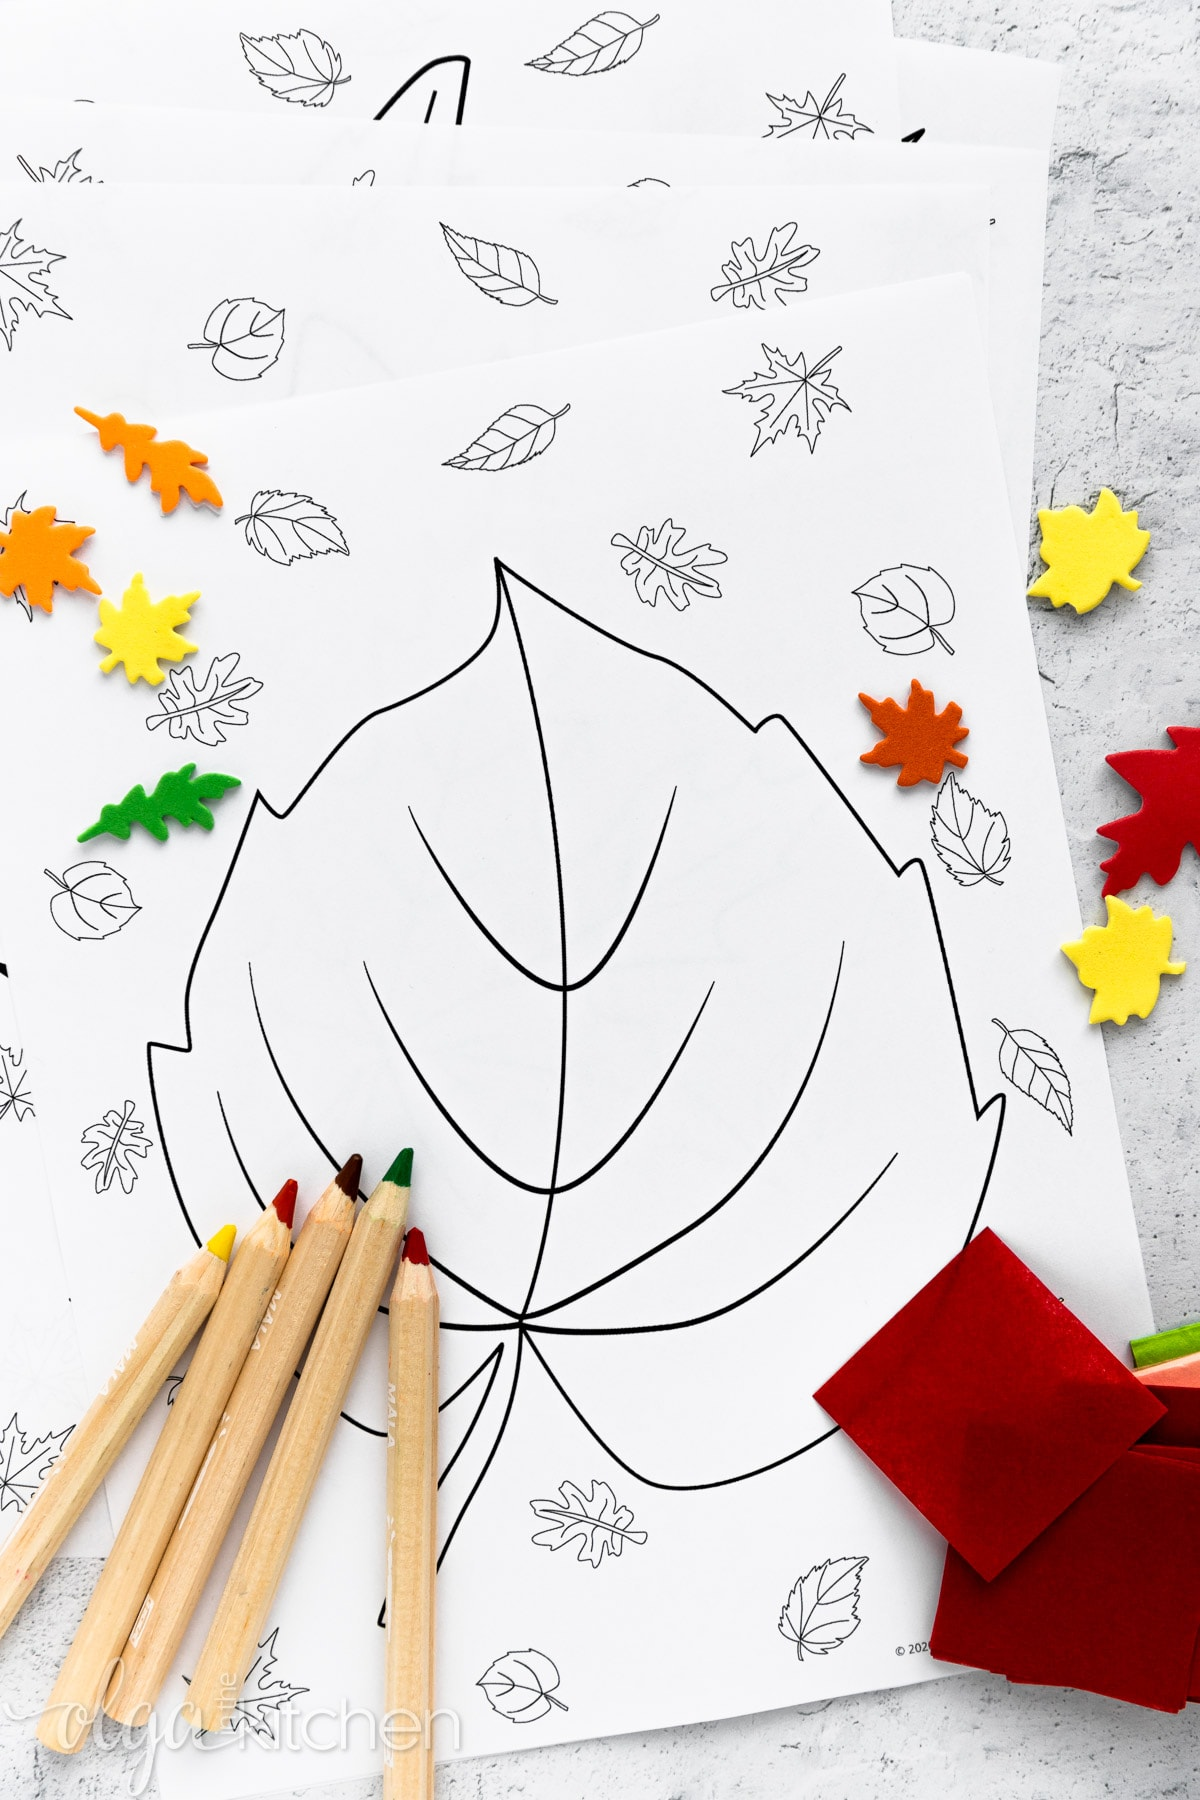 Print off these FREE printable autumn leaves coloring pages for a fall rainy day or a simple activity to do with your kids! #printables #coloringpages #olgainthekitchen #kidsactivity #fallcoloring #autumncoloring #school